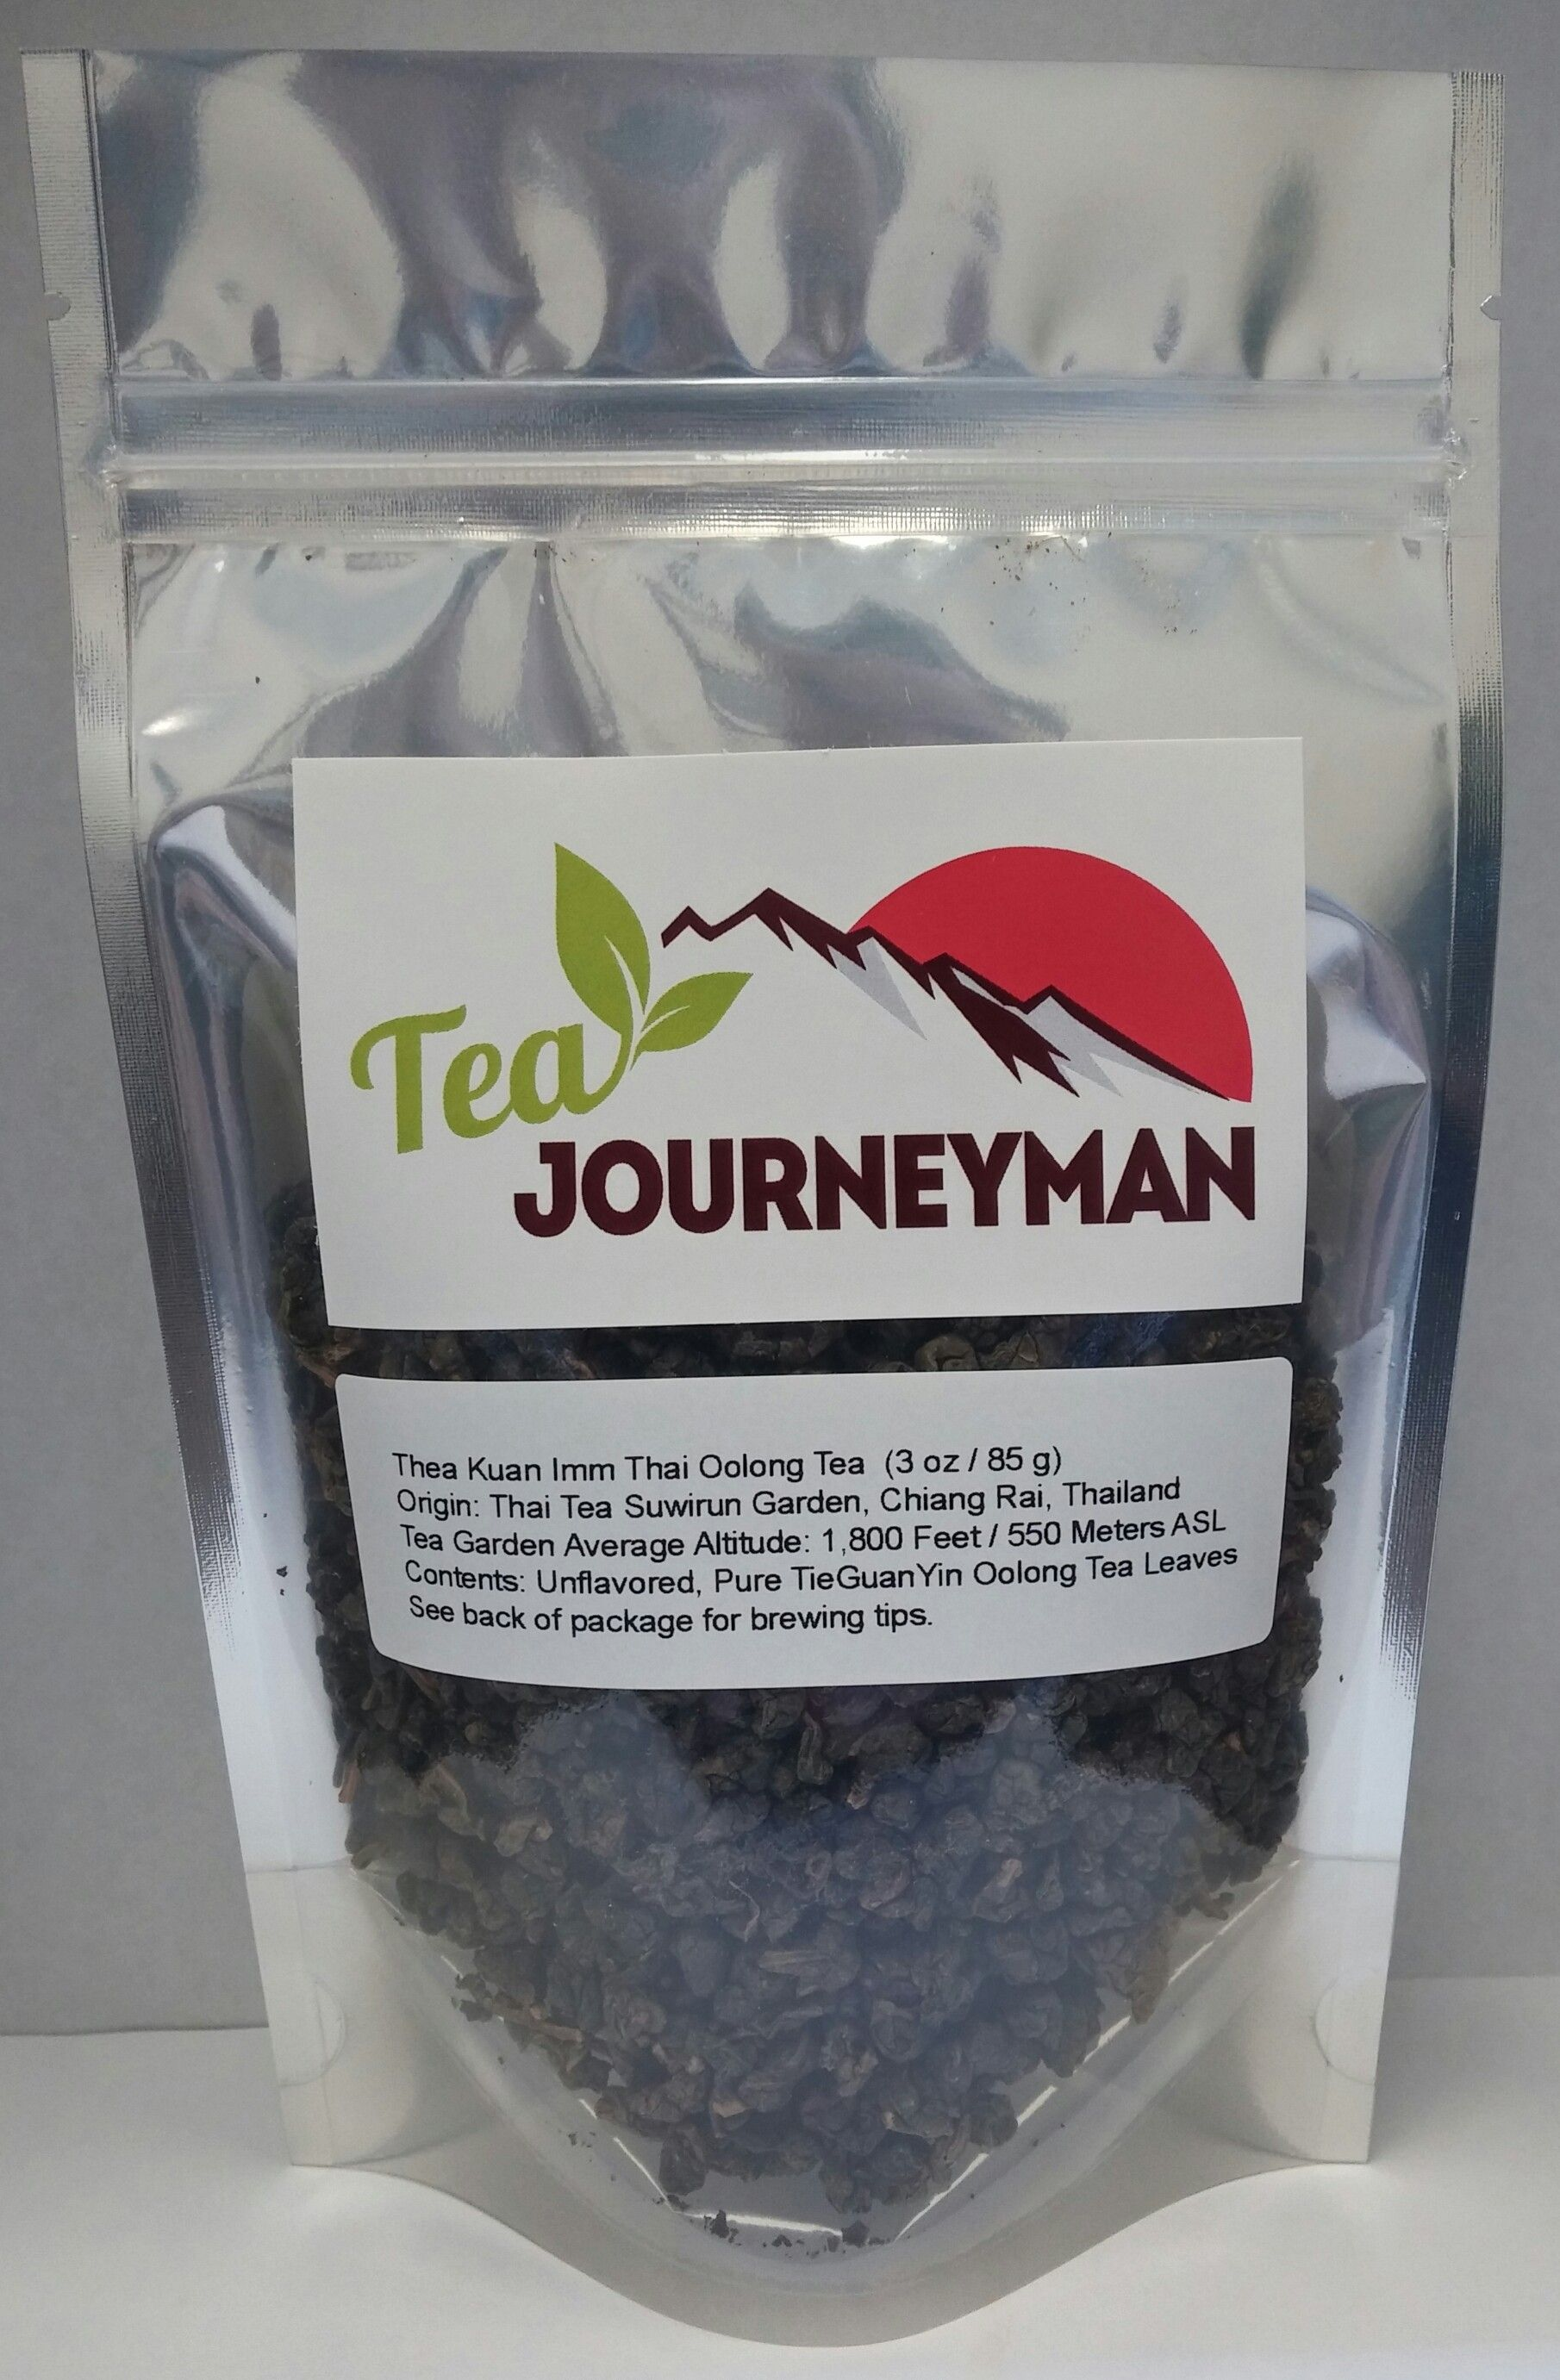 Thea Kuan Imm Thai Oolong Tea in Three Ounce Packet. Now available for purchase at http://www.teajourneymanshop.com!